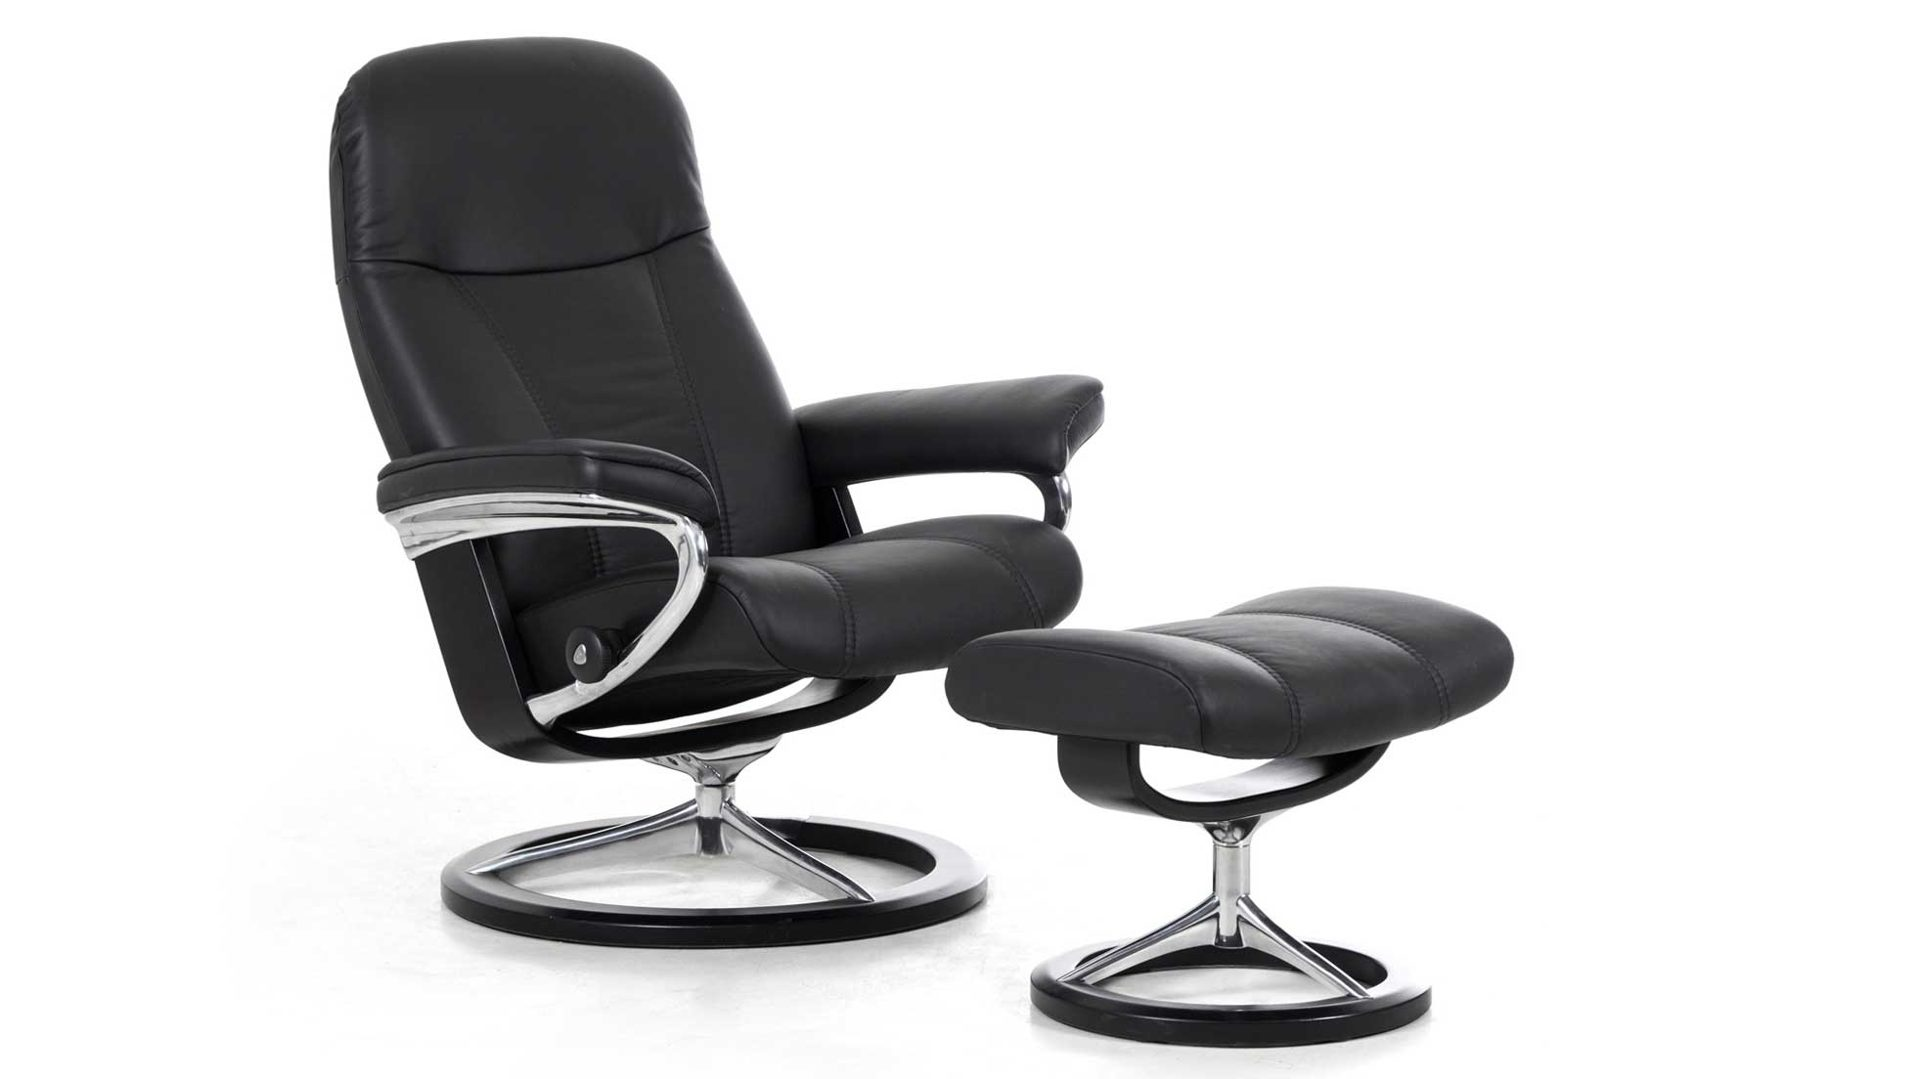 Stressless Consul M Signature Relax Sessel Und Hocker Leder Medium